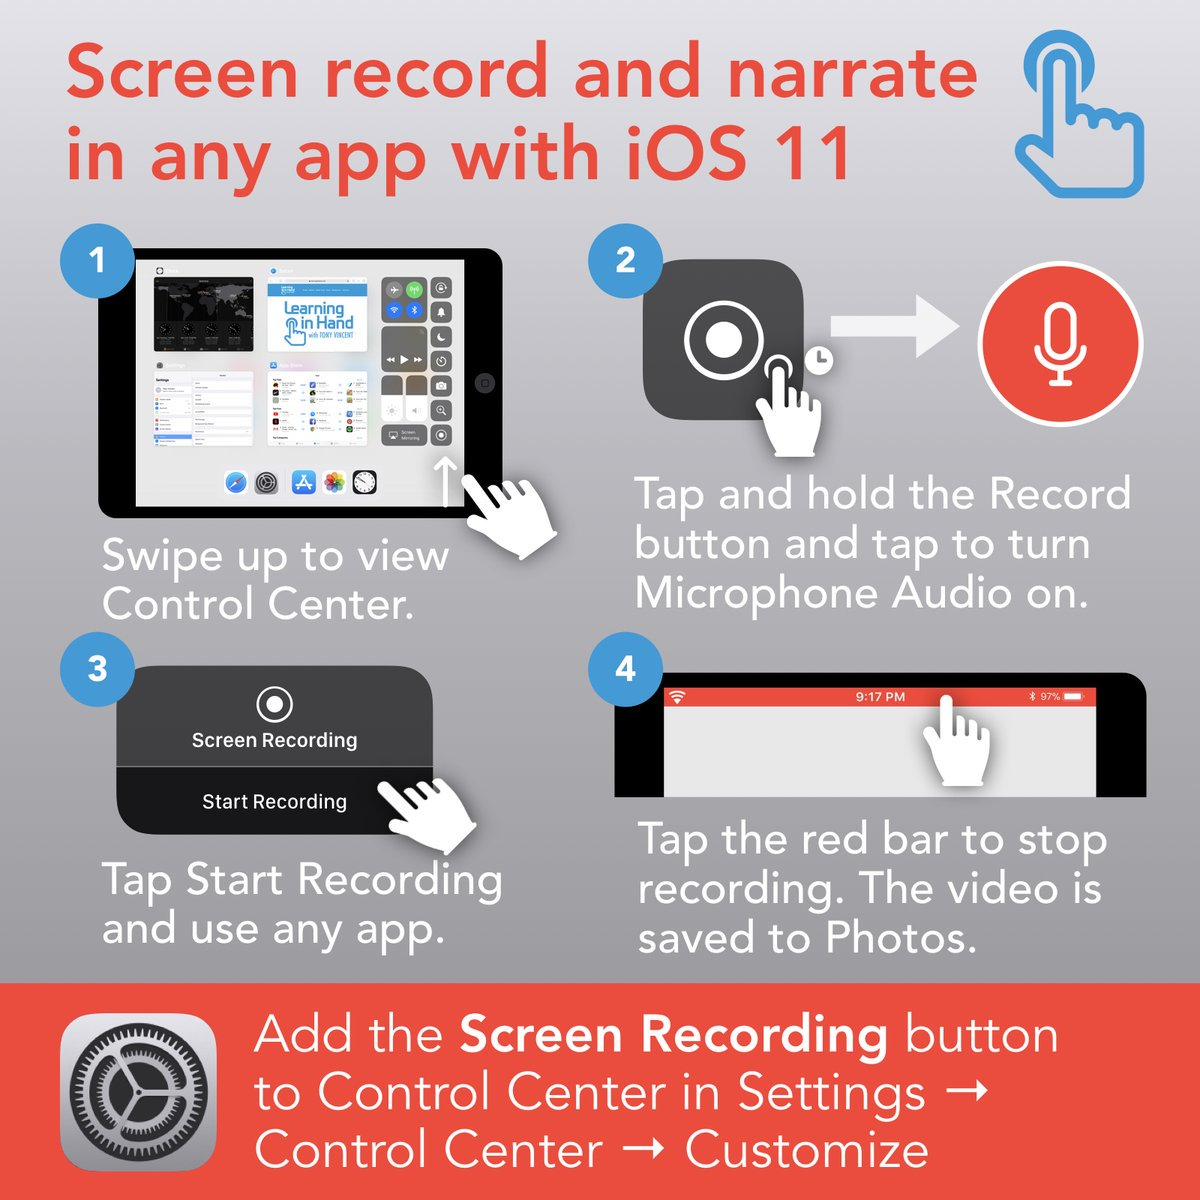 ⏺ With iOS 11 we can record an iPad or iPhone's screen without using a computer. Great for how-tos and think-alouds. https://t.co/pGXOc5F9mC